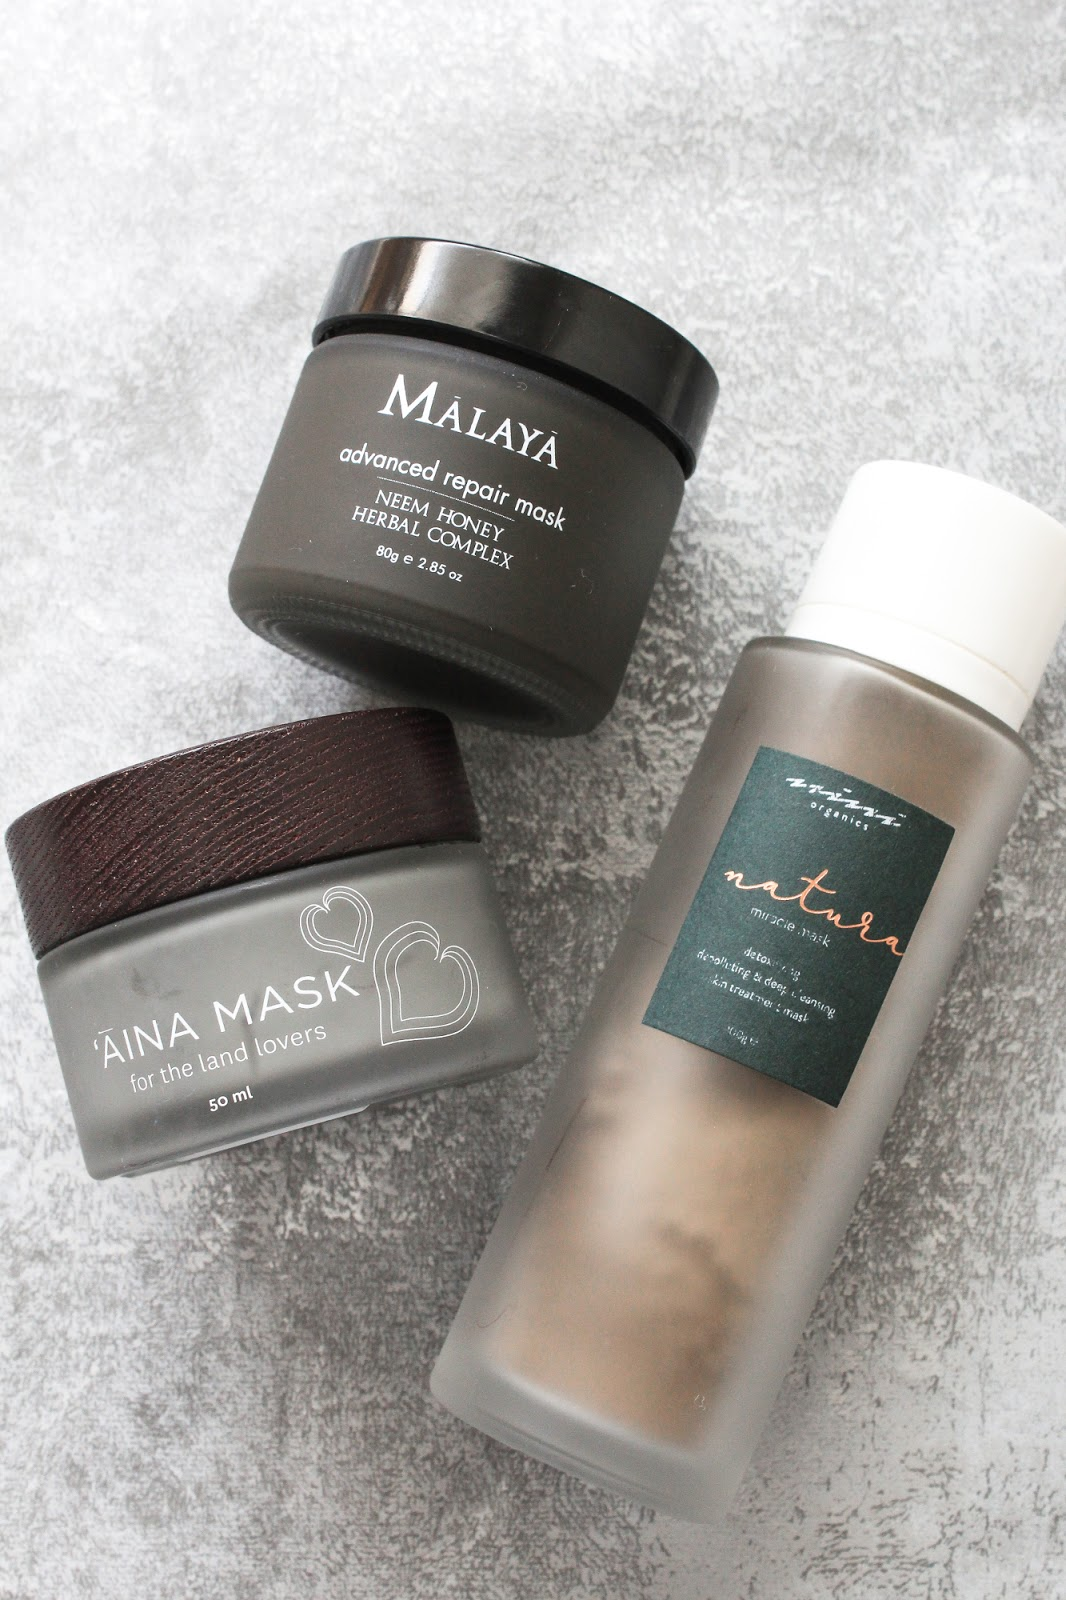 Malaya Organics Advanced Repair Mask, Honua Aina Mask, Nini Organics Natura Miracle Mask